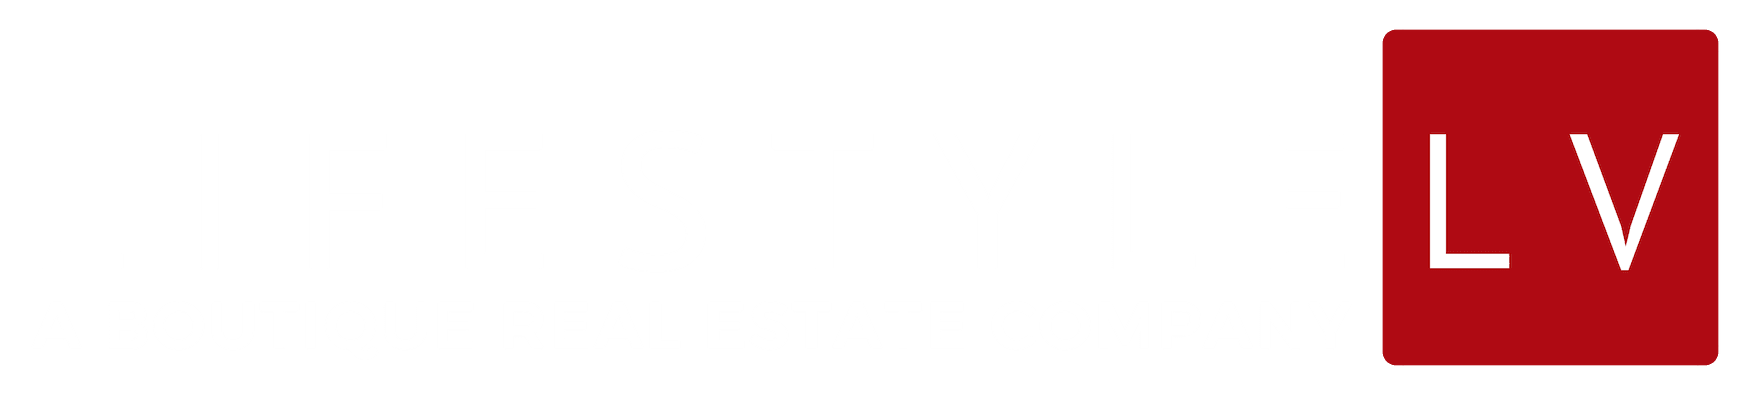 LifestyleLV Boutique Real Estate Agency